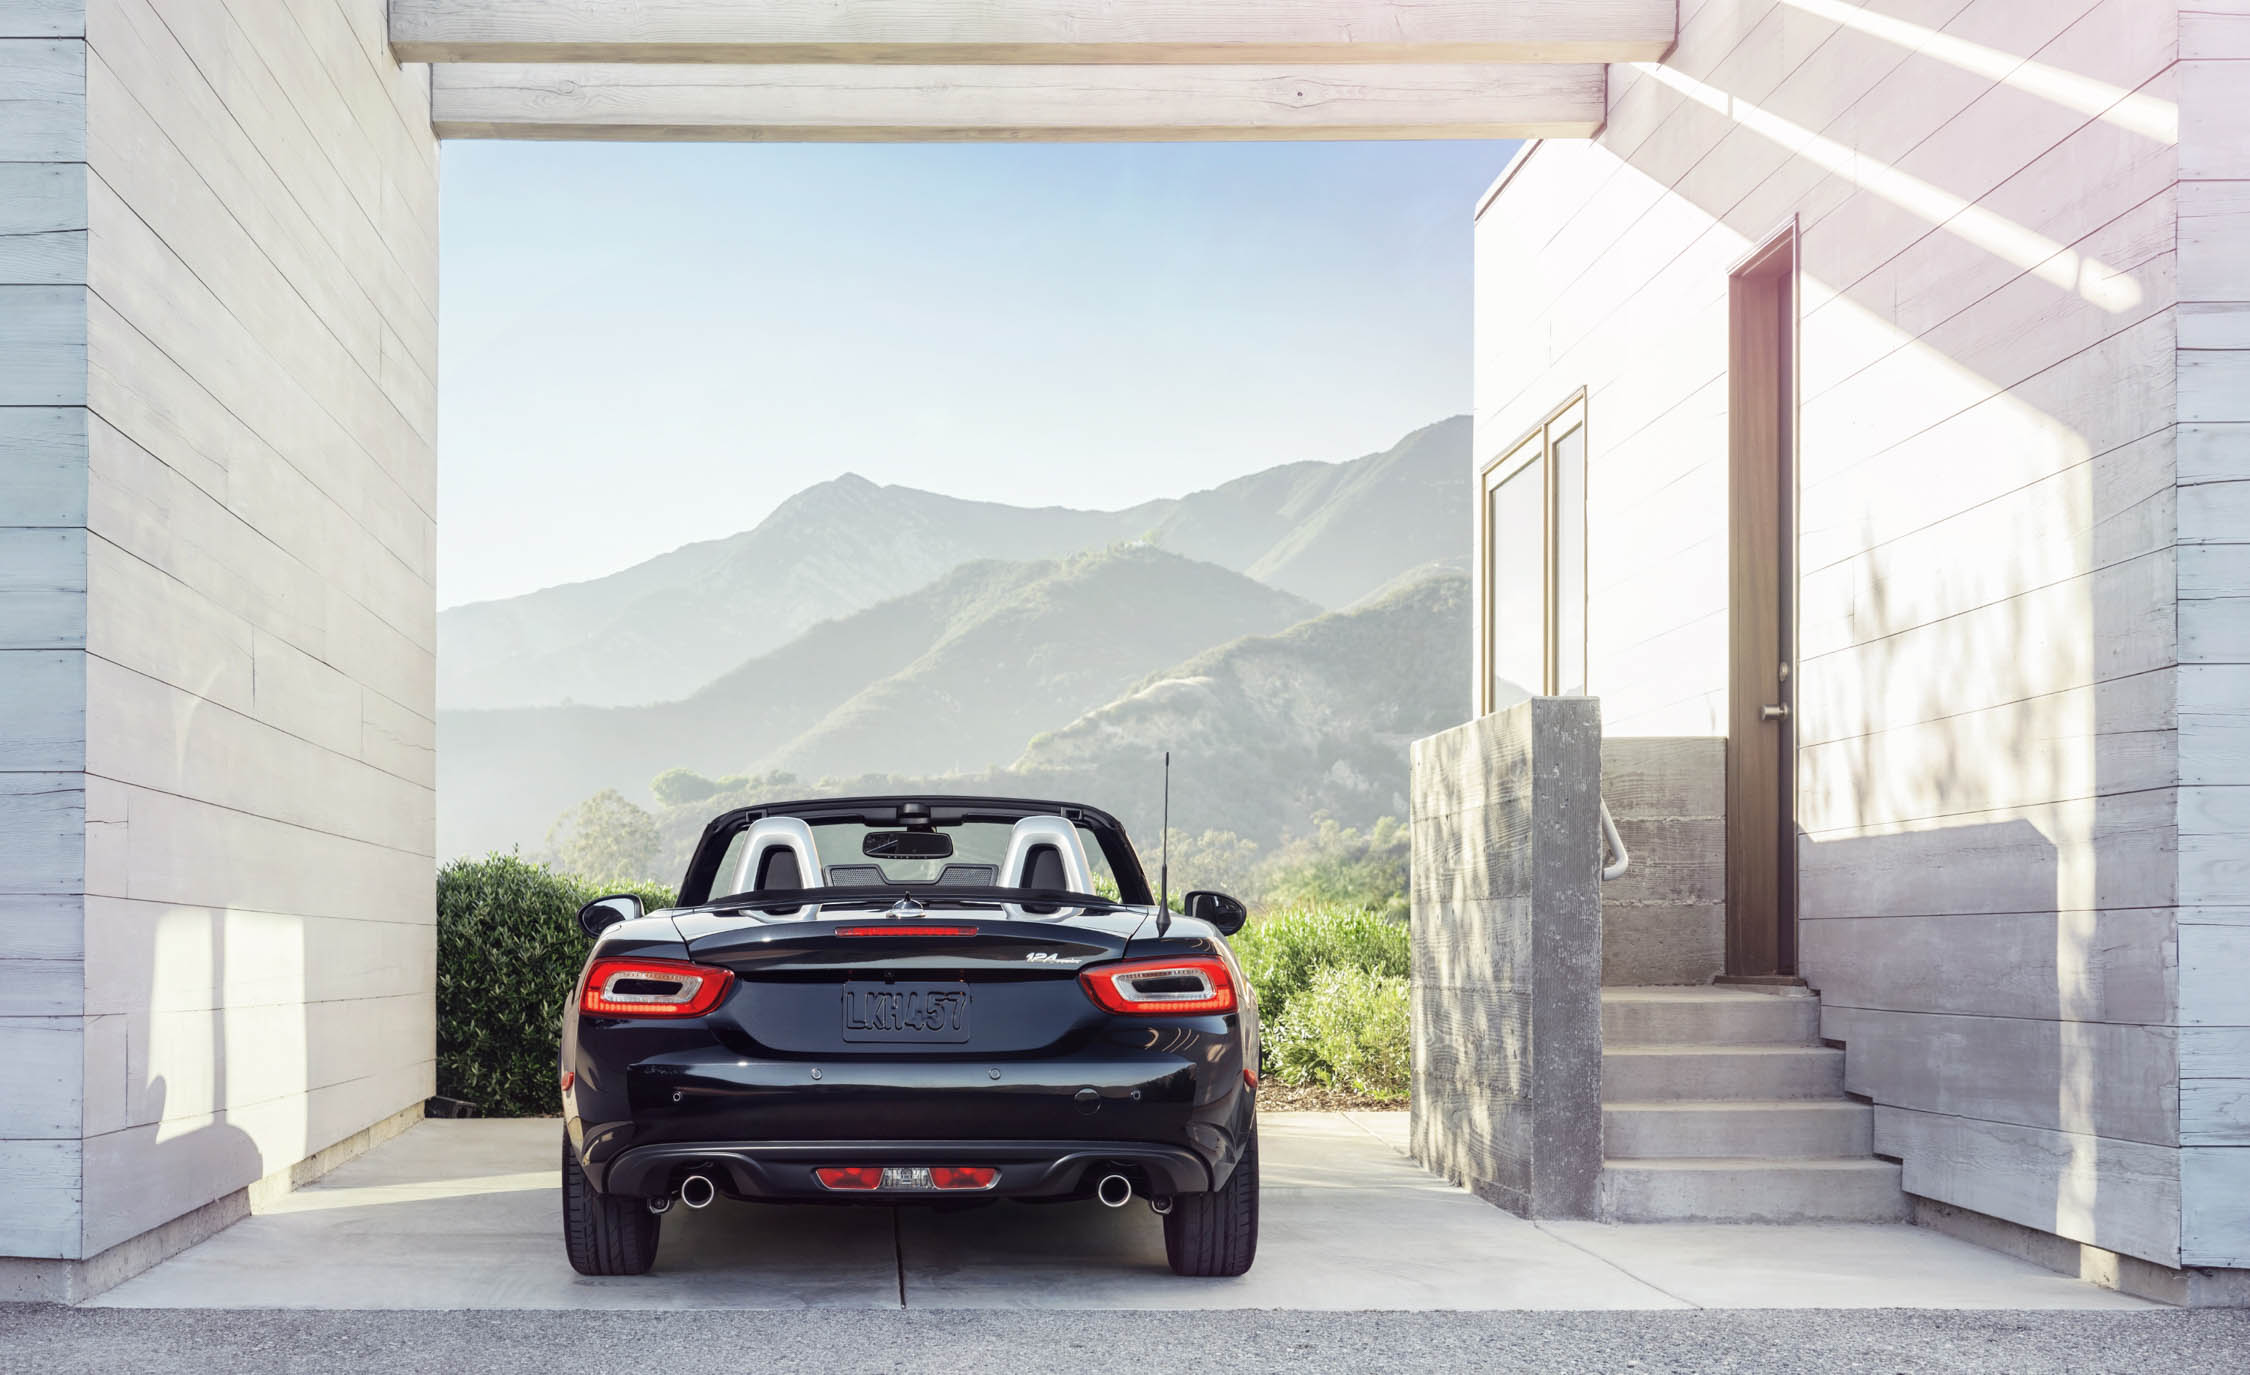 2017 Fiat 124 Spider Rear End Design (Photo 20 of 23)